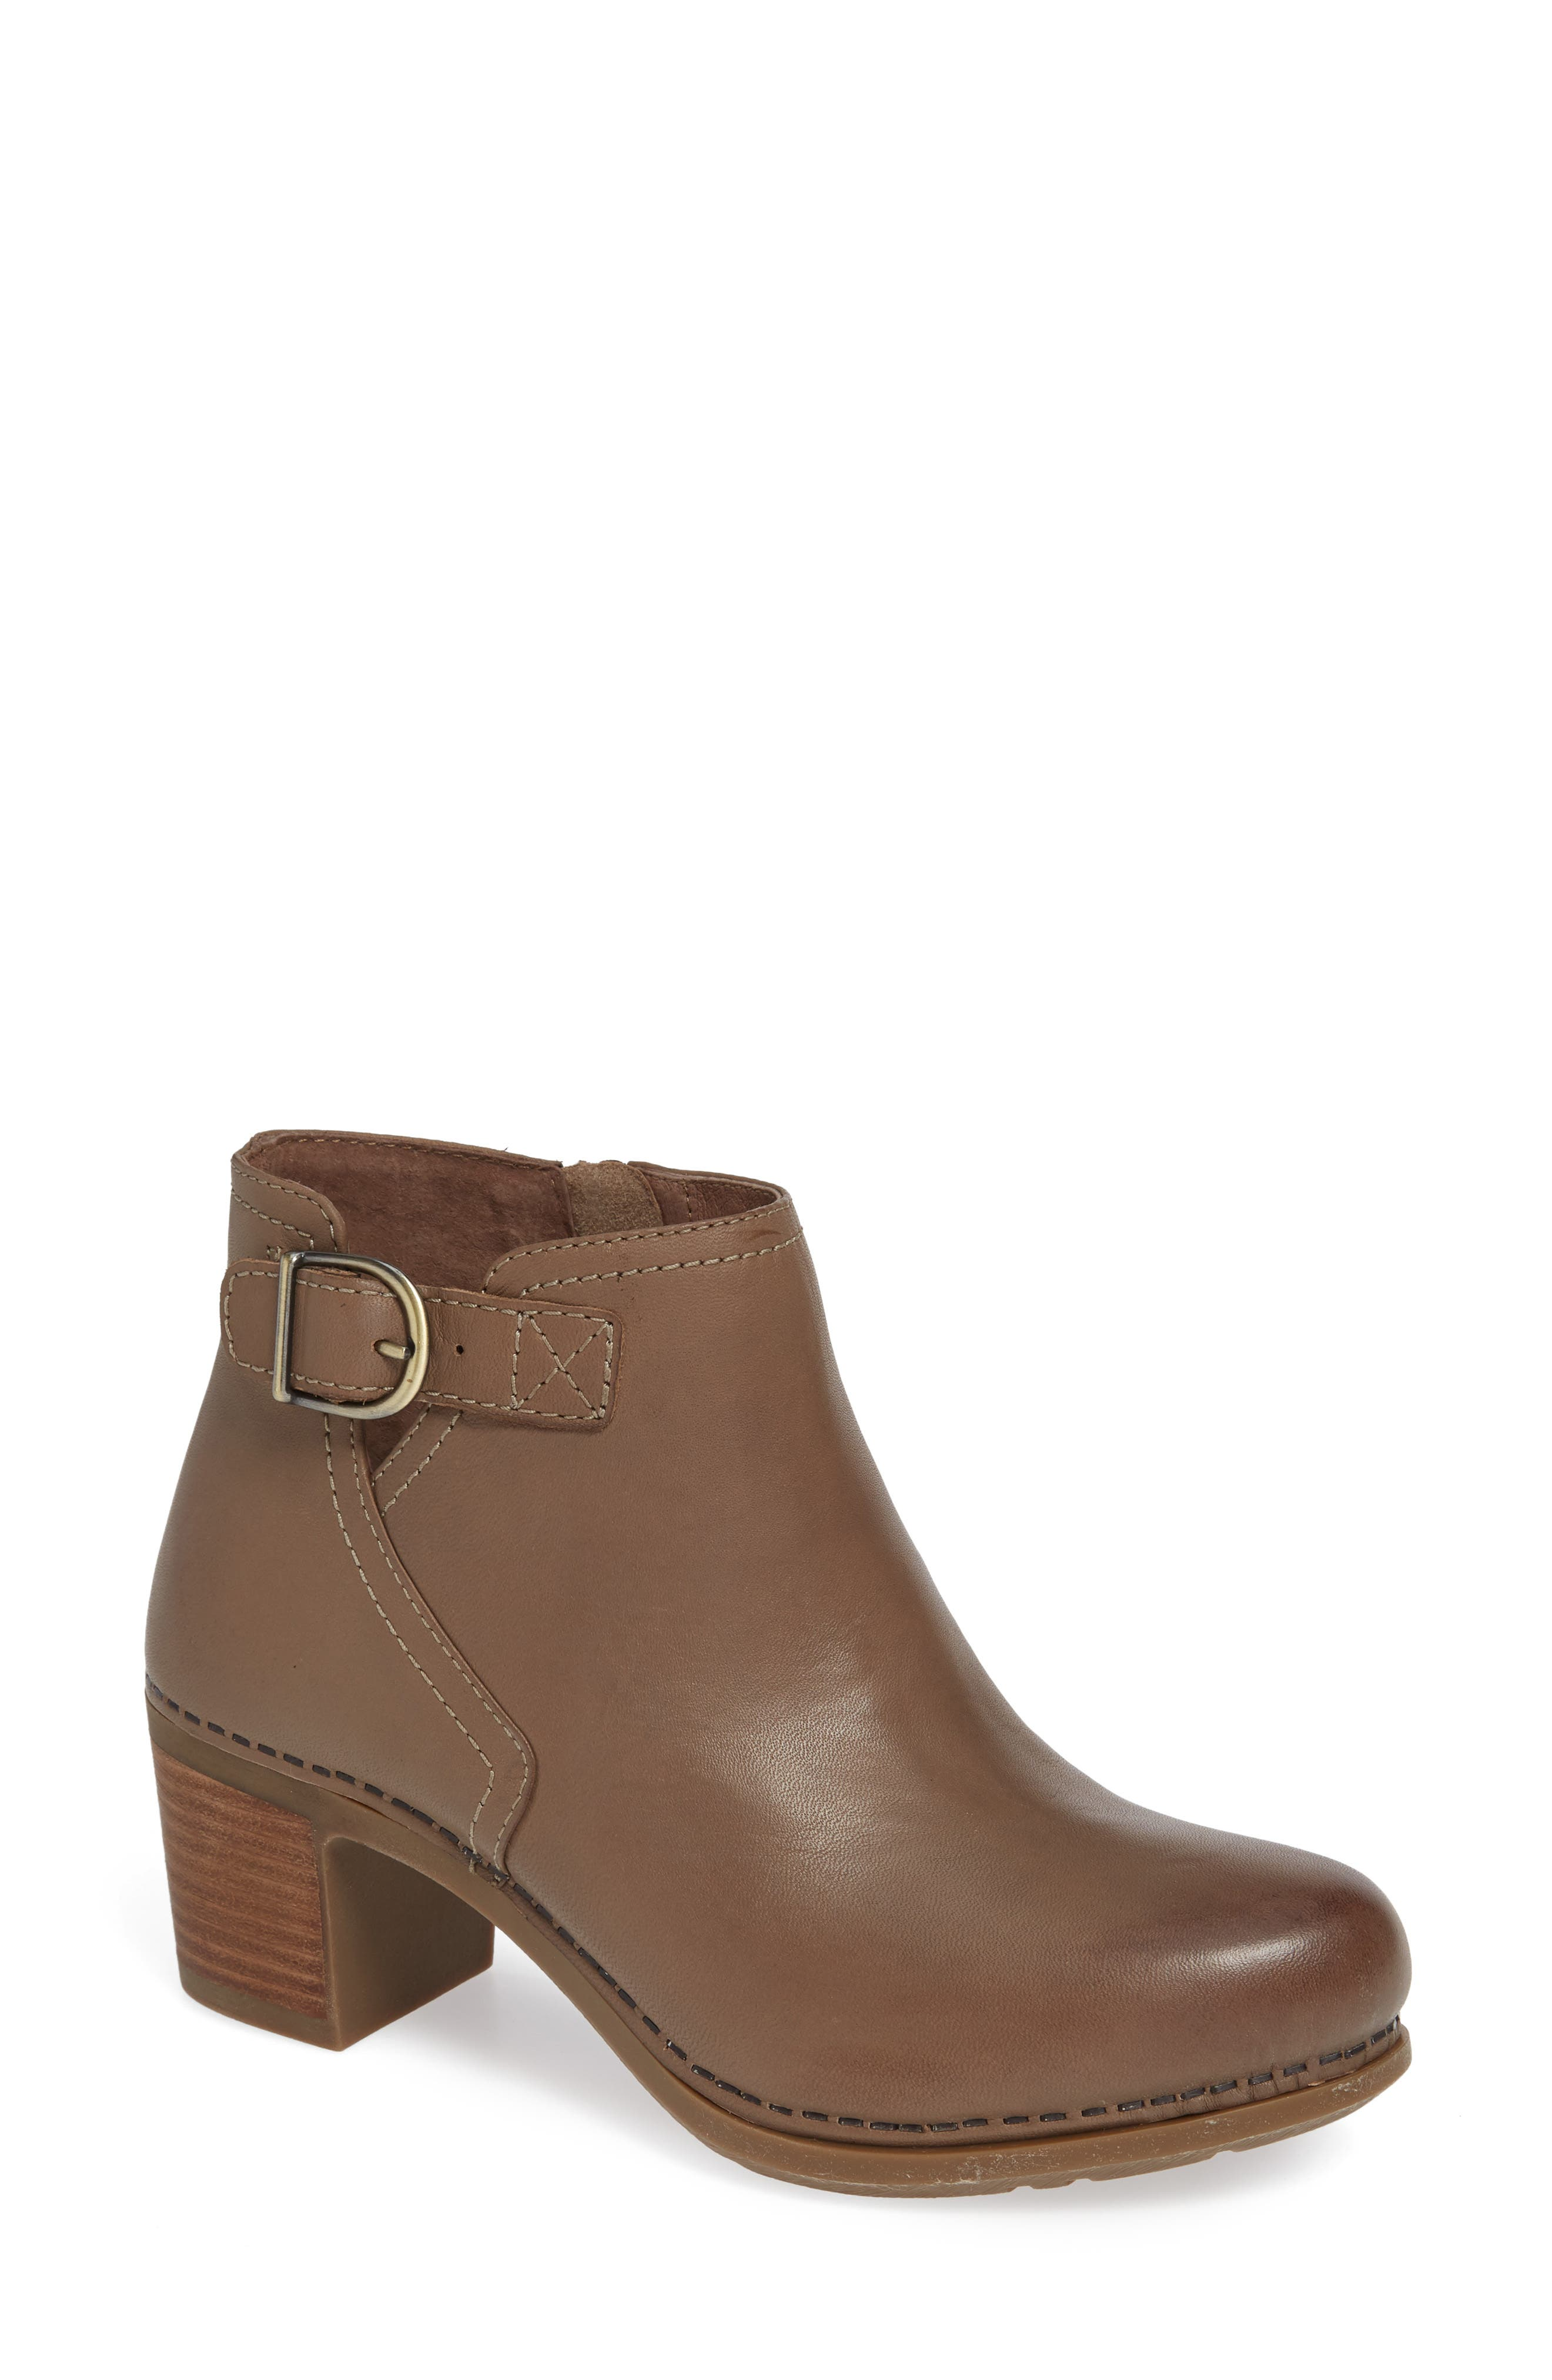 Henley Bootie,                             Main thumbnail 1, color,                             TAUPE LEATHER